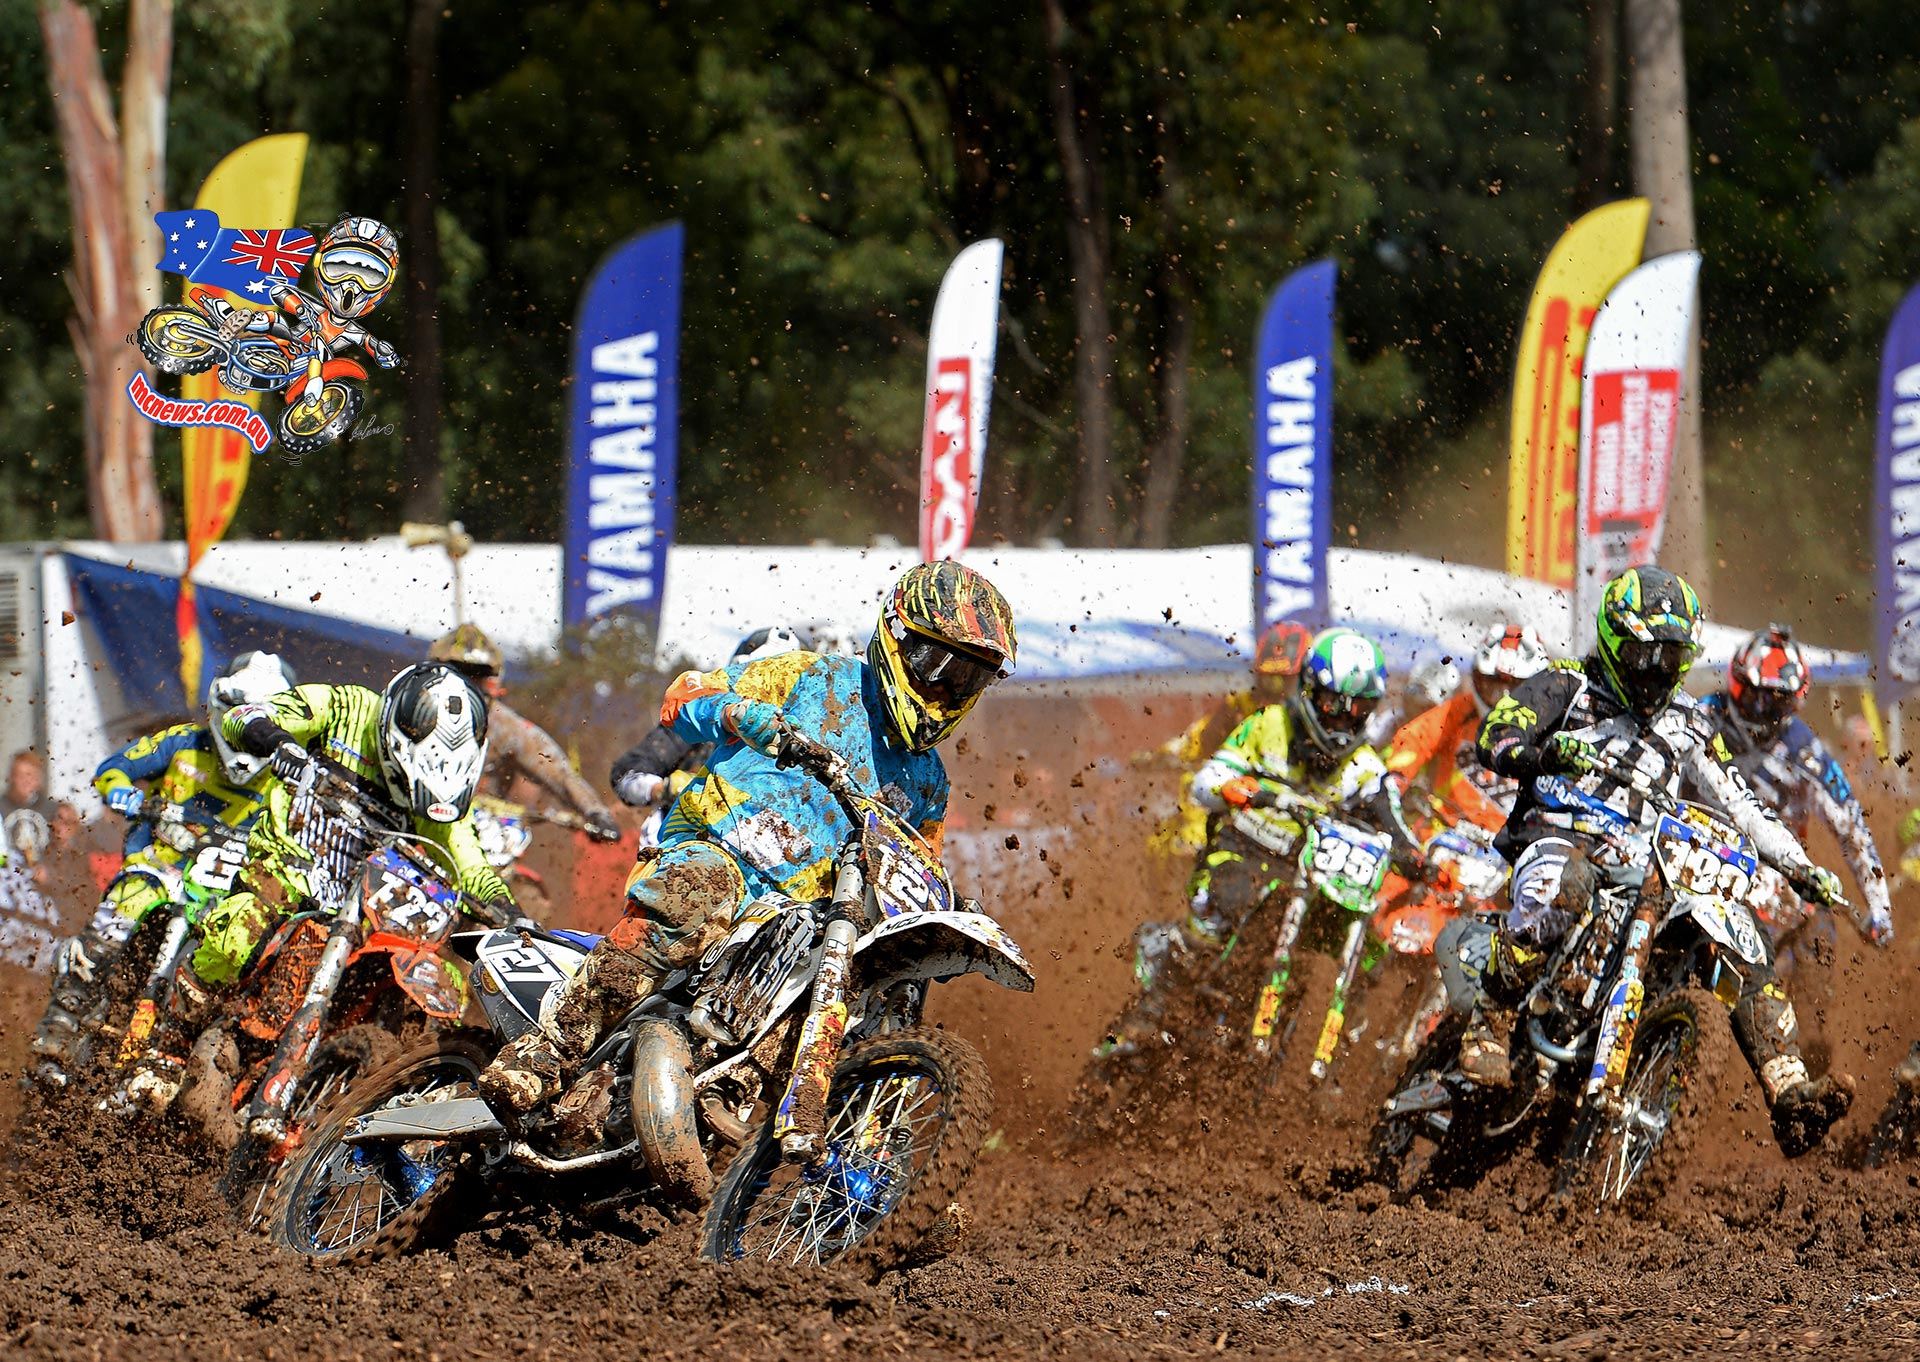 MX2-MX-Nationals-Appin-Australian-Motocross-MX-Motocross-Jeff-Crow-Photography